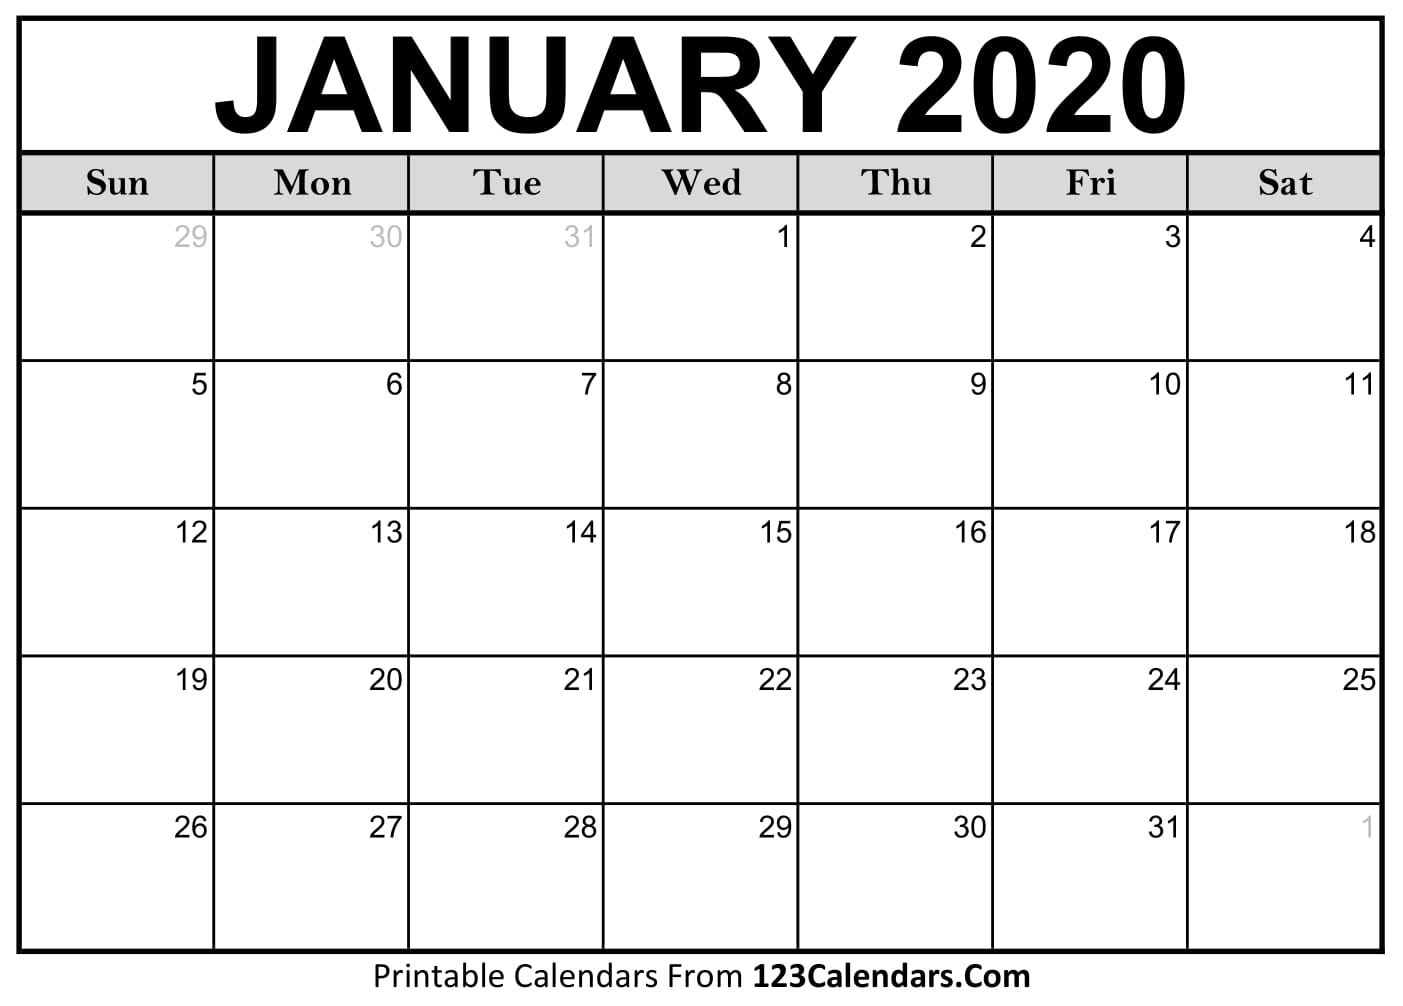 Printable Fill In Calendar For 2020 - Calendar Inspiration